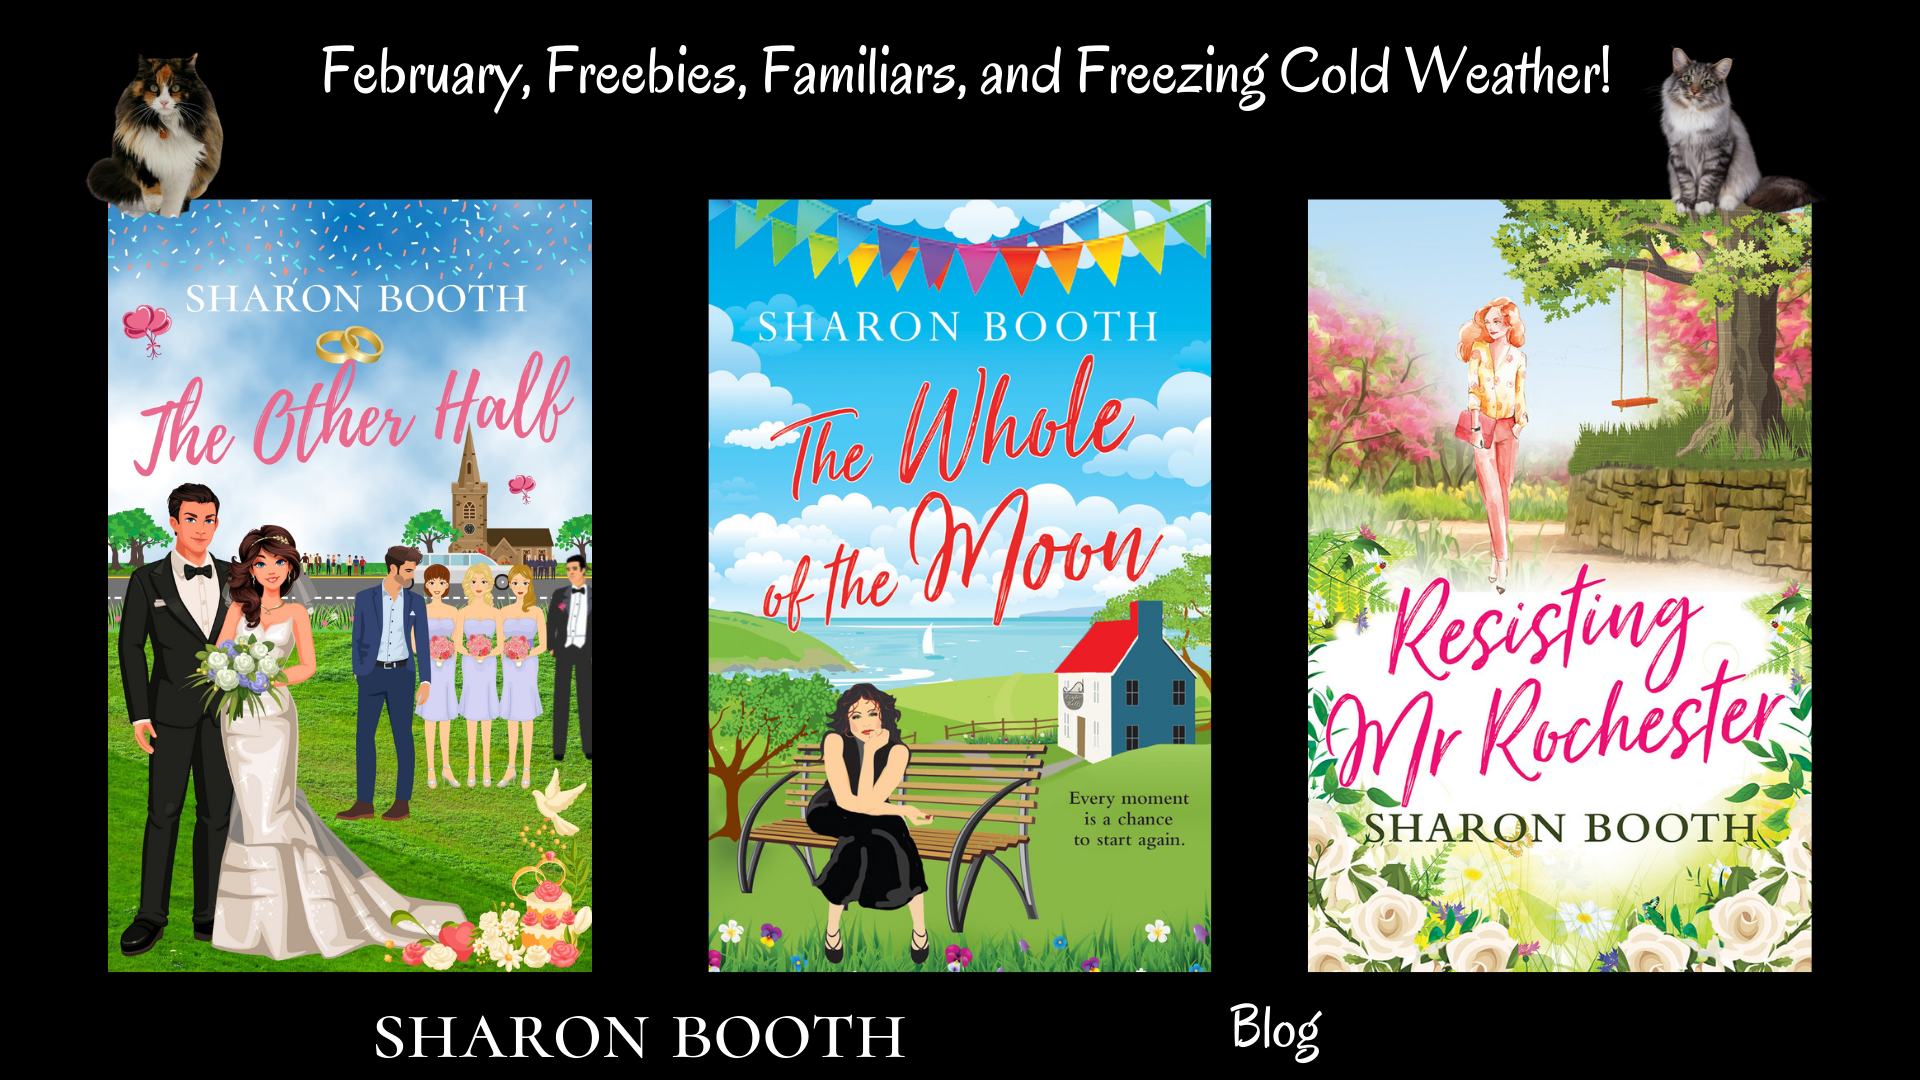 February, Freebies, Familiars, and Freezing Cold Weather!